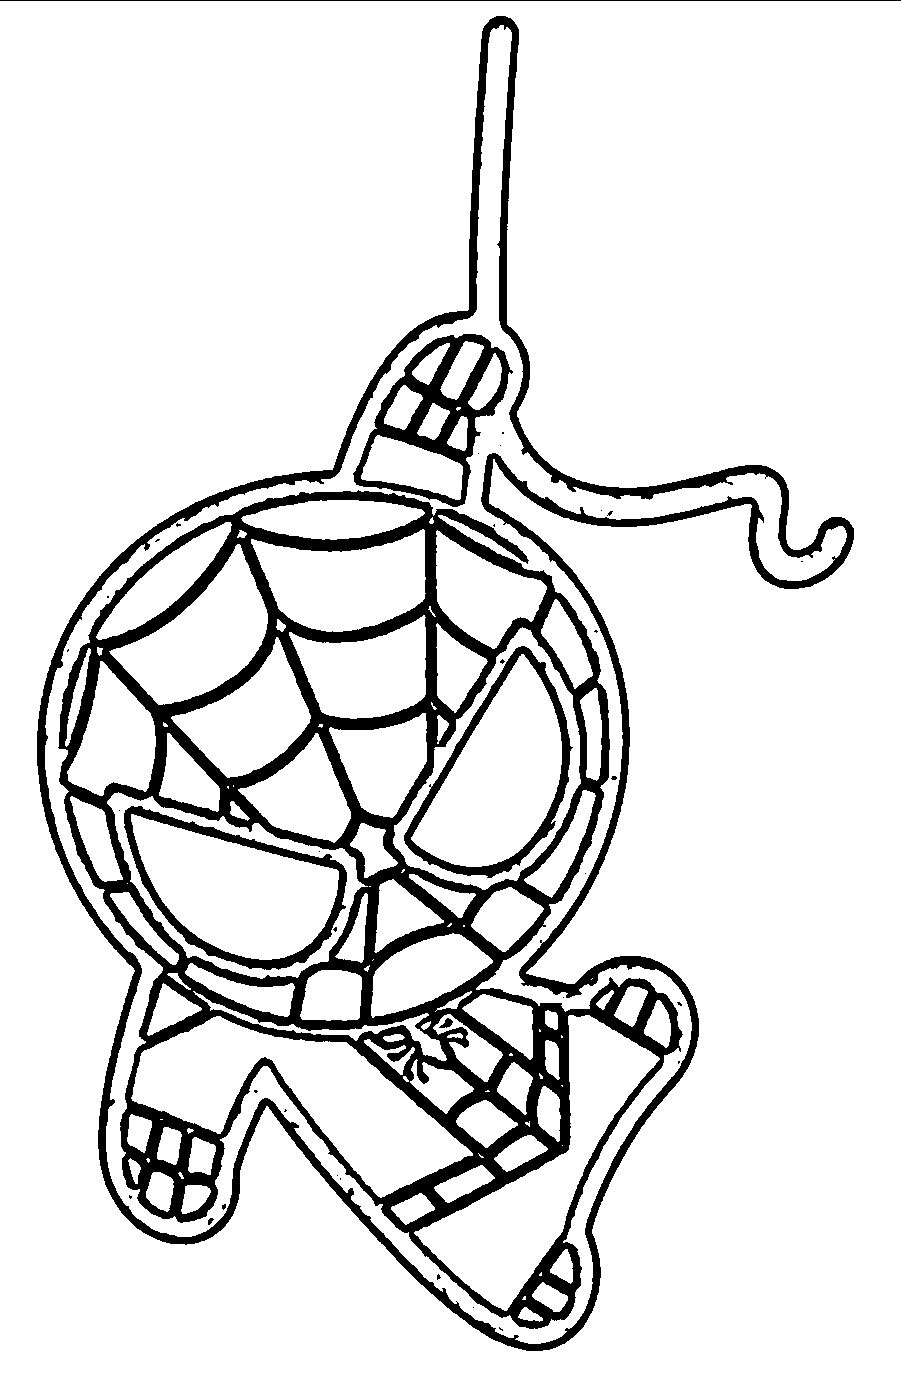 Baby Spiderman Coloring Pages at GetDrawings.com | Free for ...